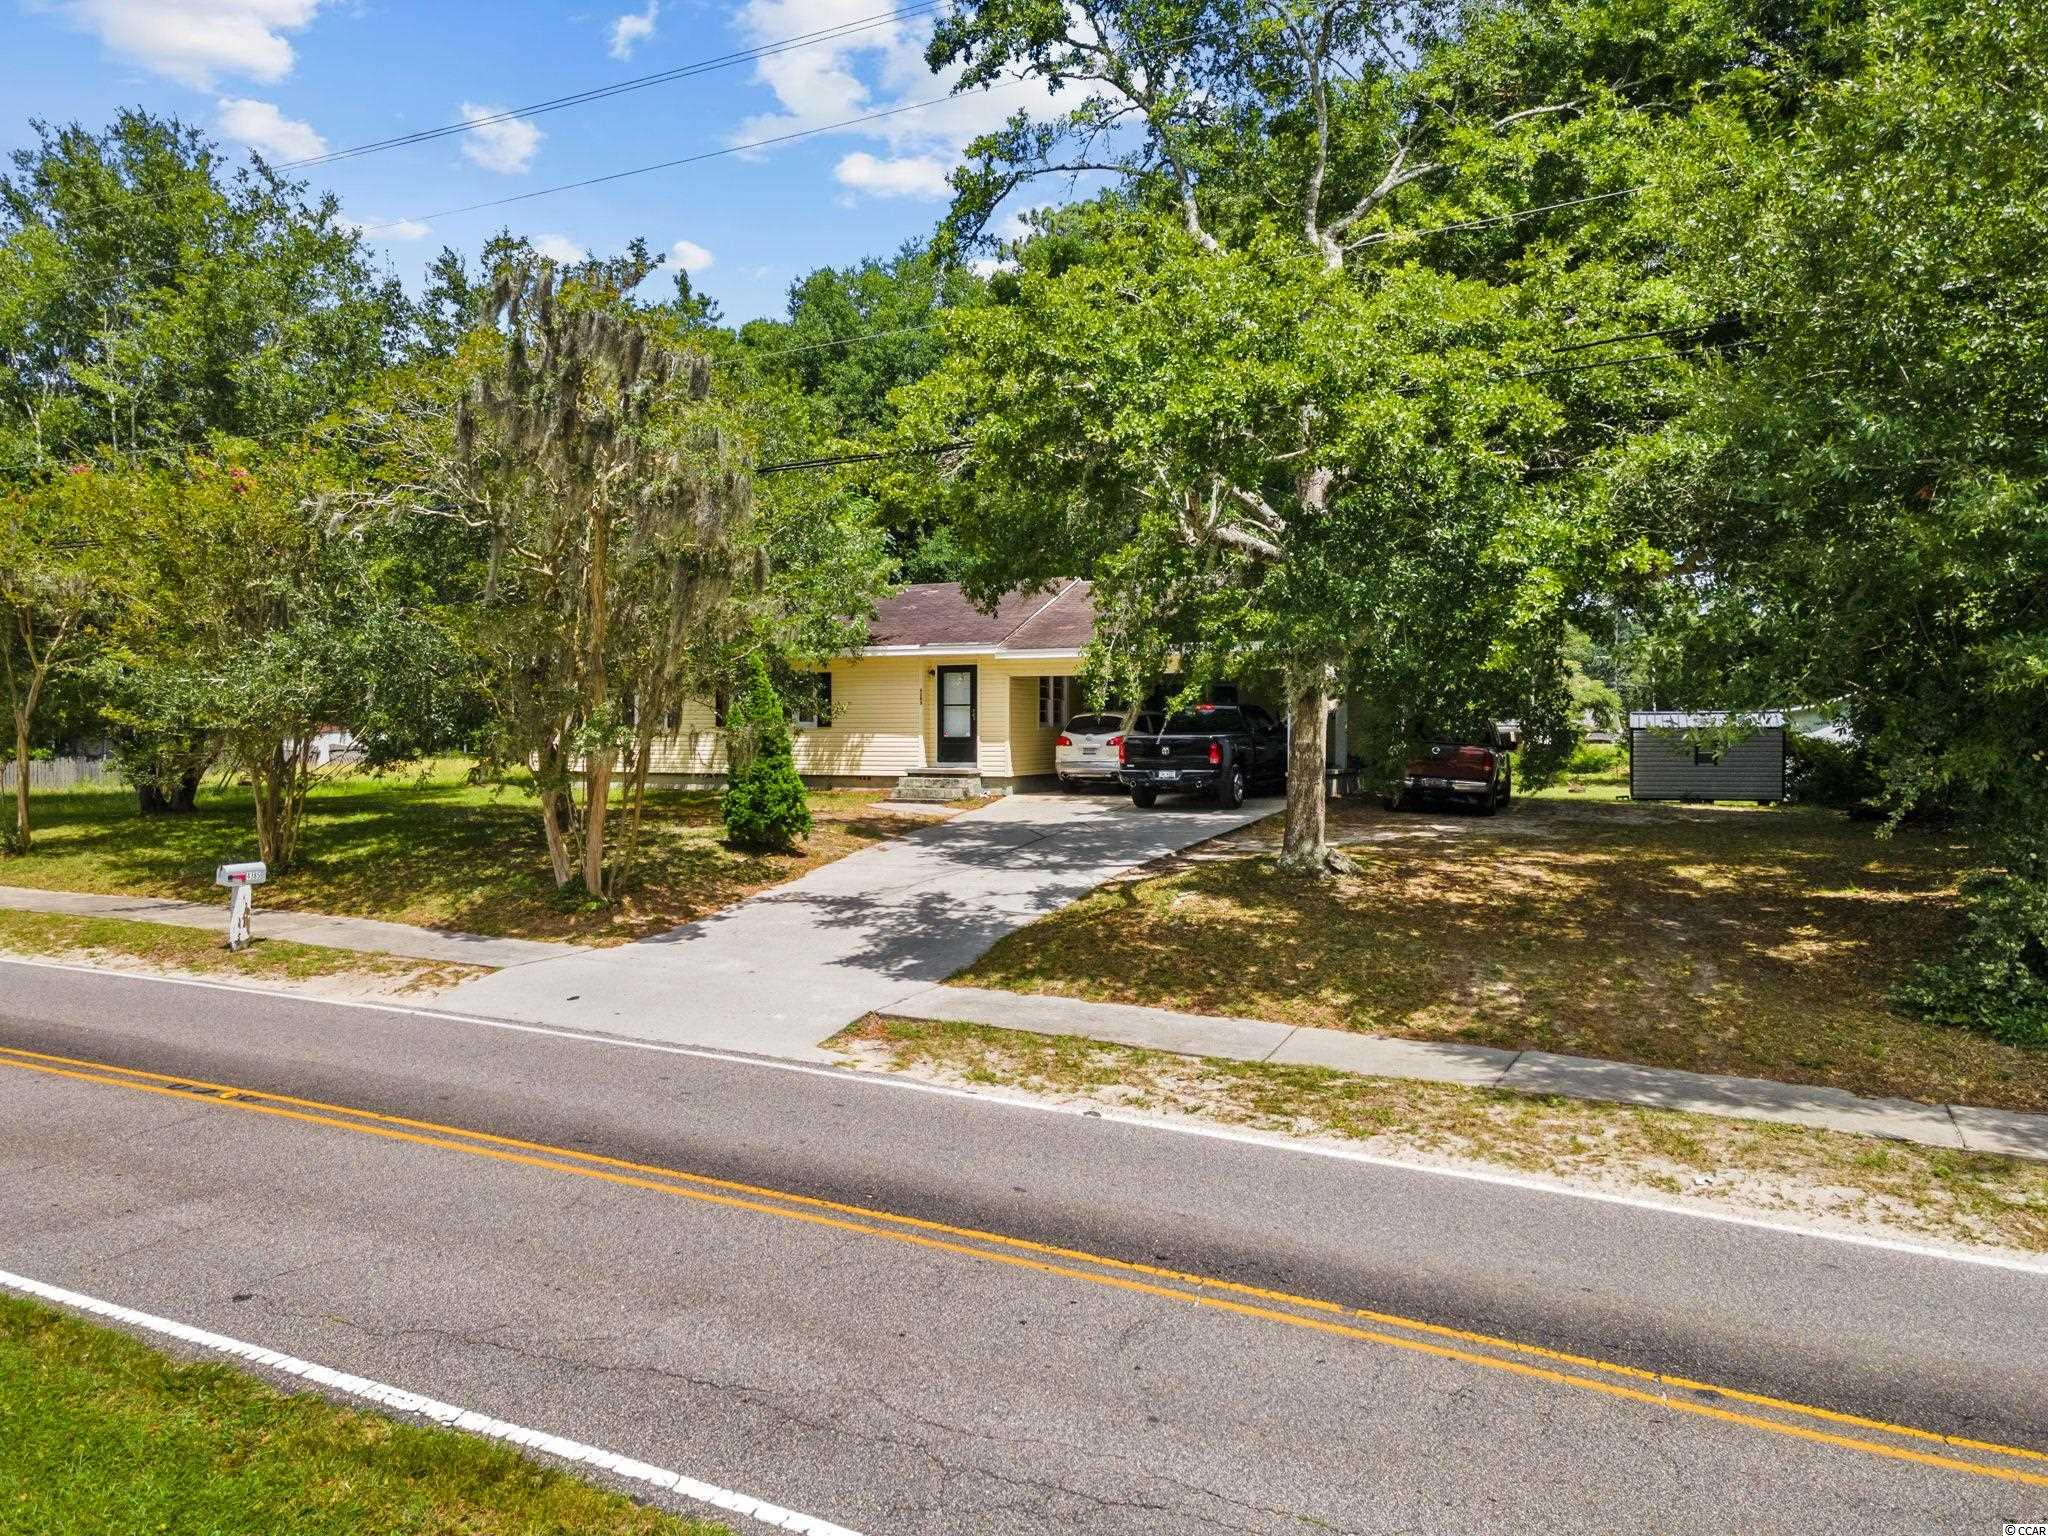 Rare opportunity located in Little River SC! NO HOA! East of 17 ! Close to the Beach and Golf! Adorable cottage style 3 bedroom 2 bath home on a .41 ac lot. Just a Golf Cart Ride or Walk from the ICW, Casino Boats, and all the local hotspots . Hang out on your newly built 2021 wooden deck in your back yard shaded under the Oak Tree. You will appreciate this great size lot to park your Guests, RV , Motorcycles, Room to build a shed and Maybe install a pool. This home has an attached 2 car carport, hardwood floors, freshly painted walls, and a screened in breeze way to your laundry room . Located only 3.3 miles to Calabash NC , 5.8 mile to Cherry Grove North Myrtle Beach , 7.3 miles to Sunset Beach NC, 30.5 miles to Myrtle Beach Airport , and 54.4 miles to Wilmington Airport NC. Home is to be purchase AS IS Where IS